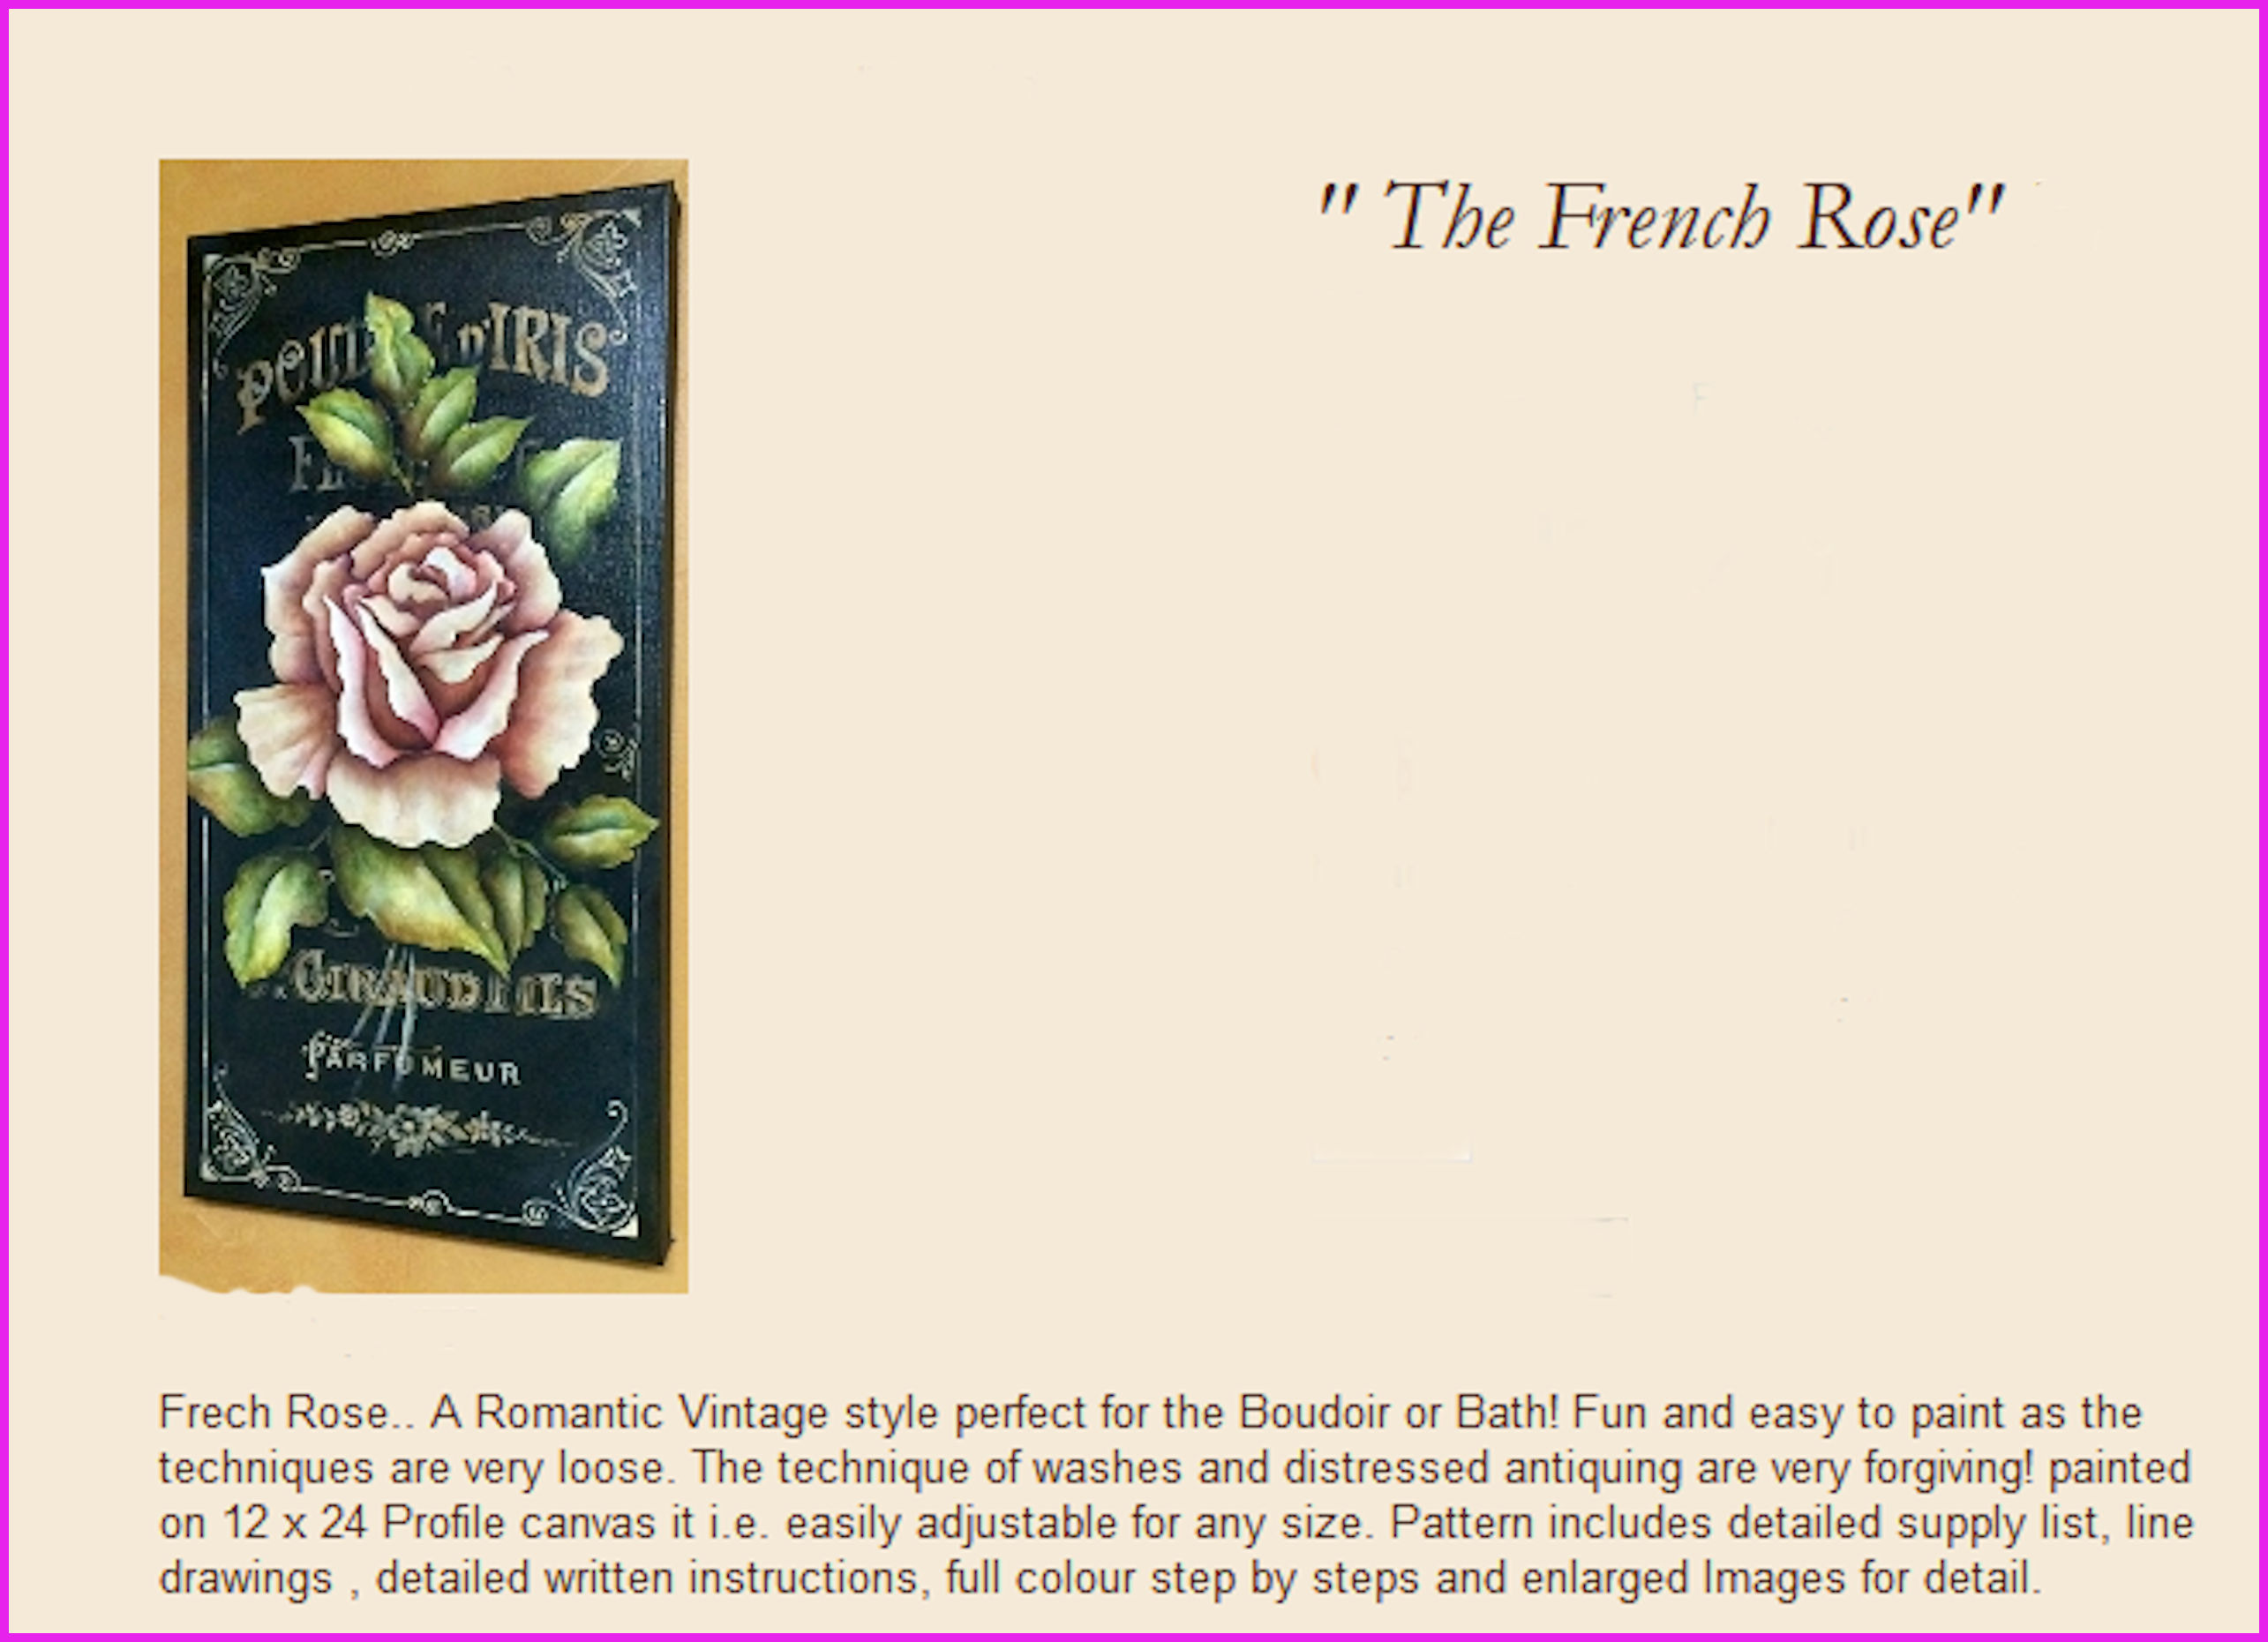 tm-french-rose-pattern-tm05306.jpg